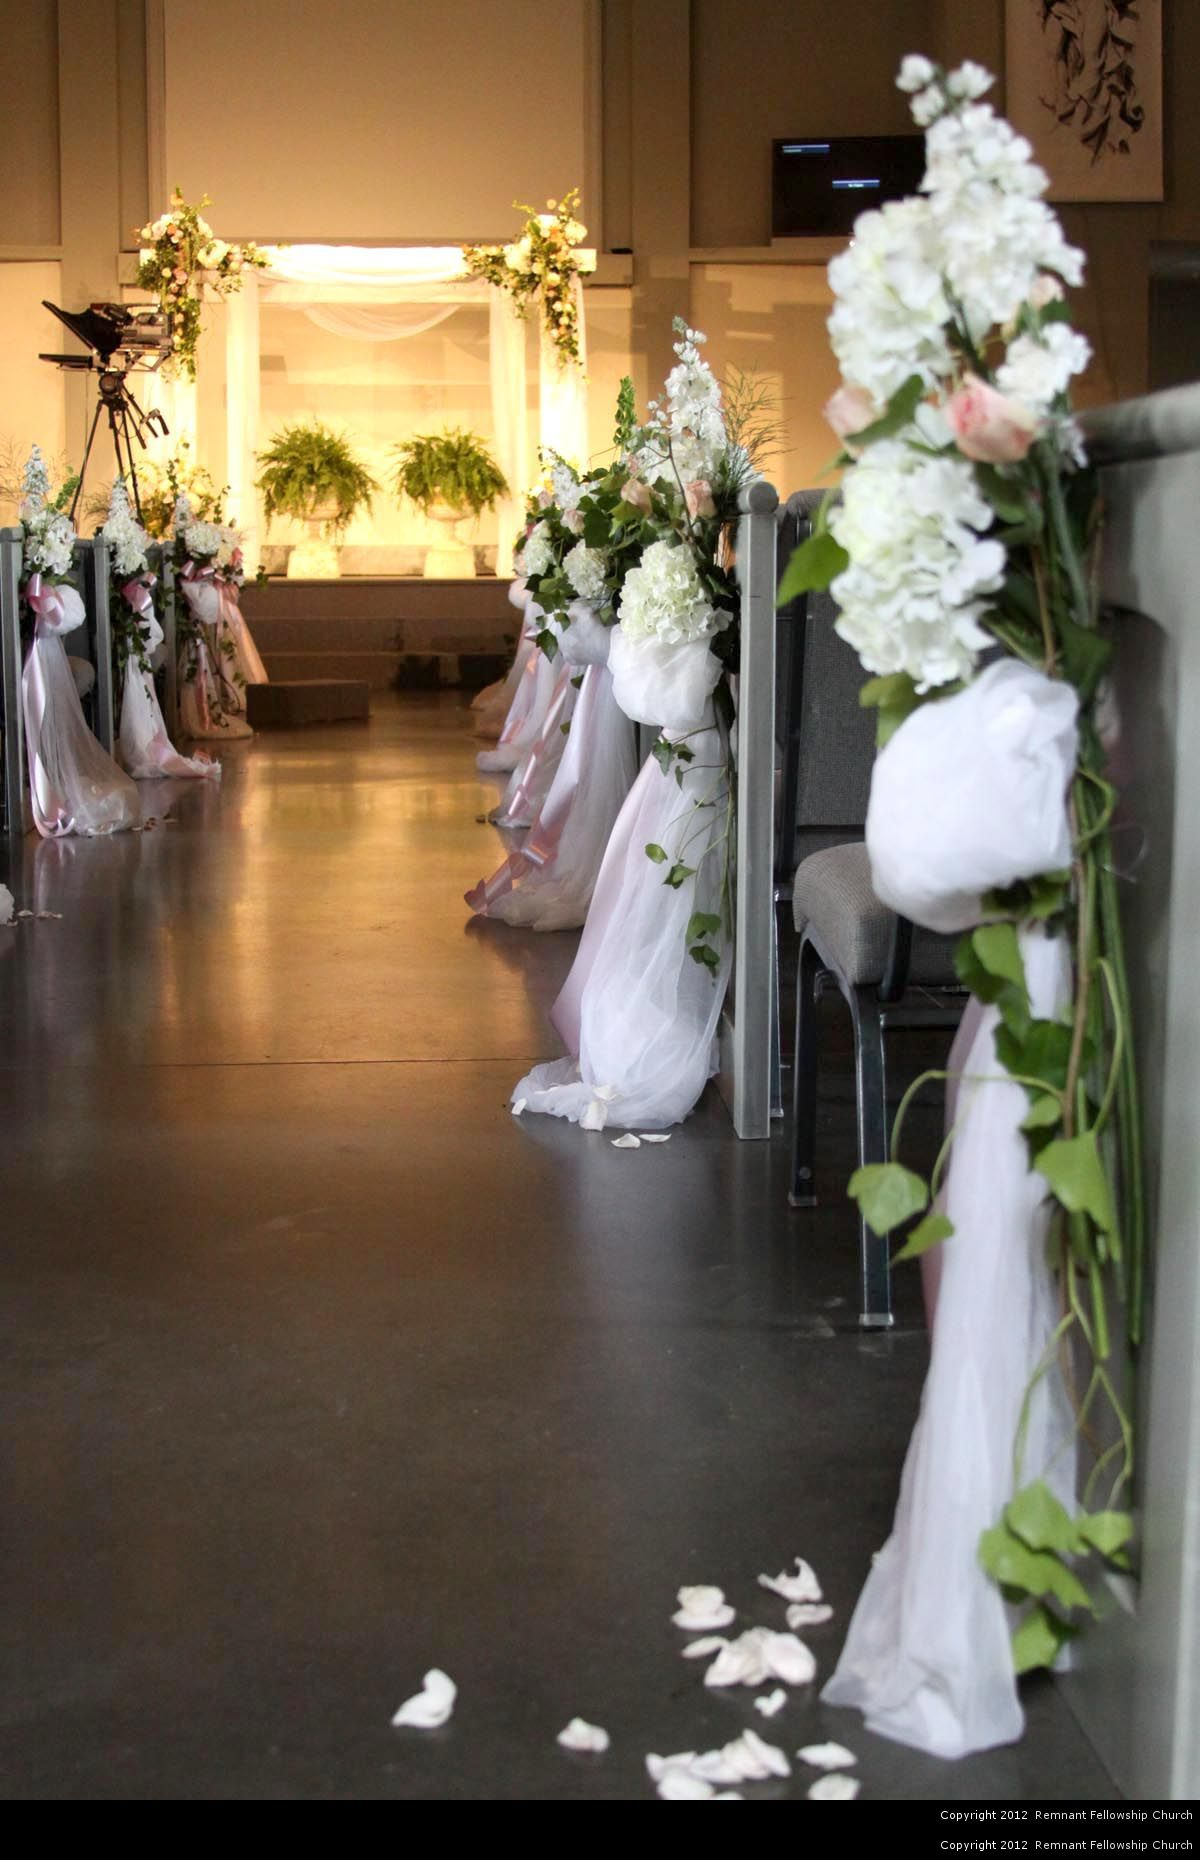 Spring White and Pink Floral Aisle Decorations